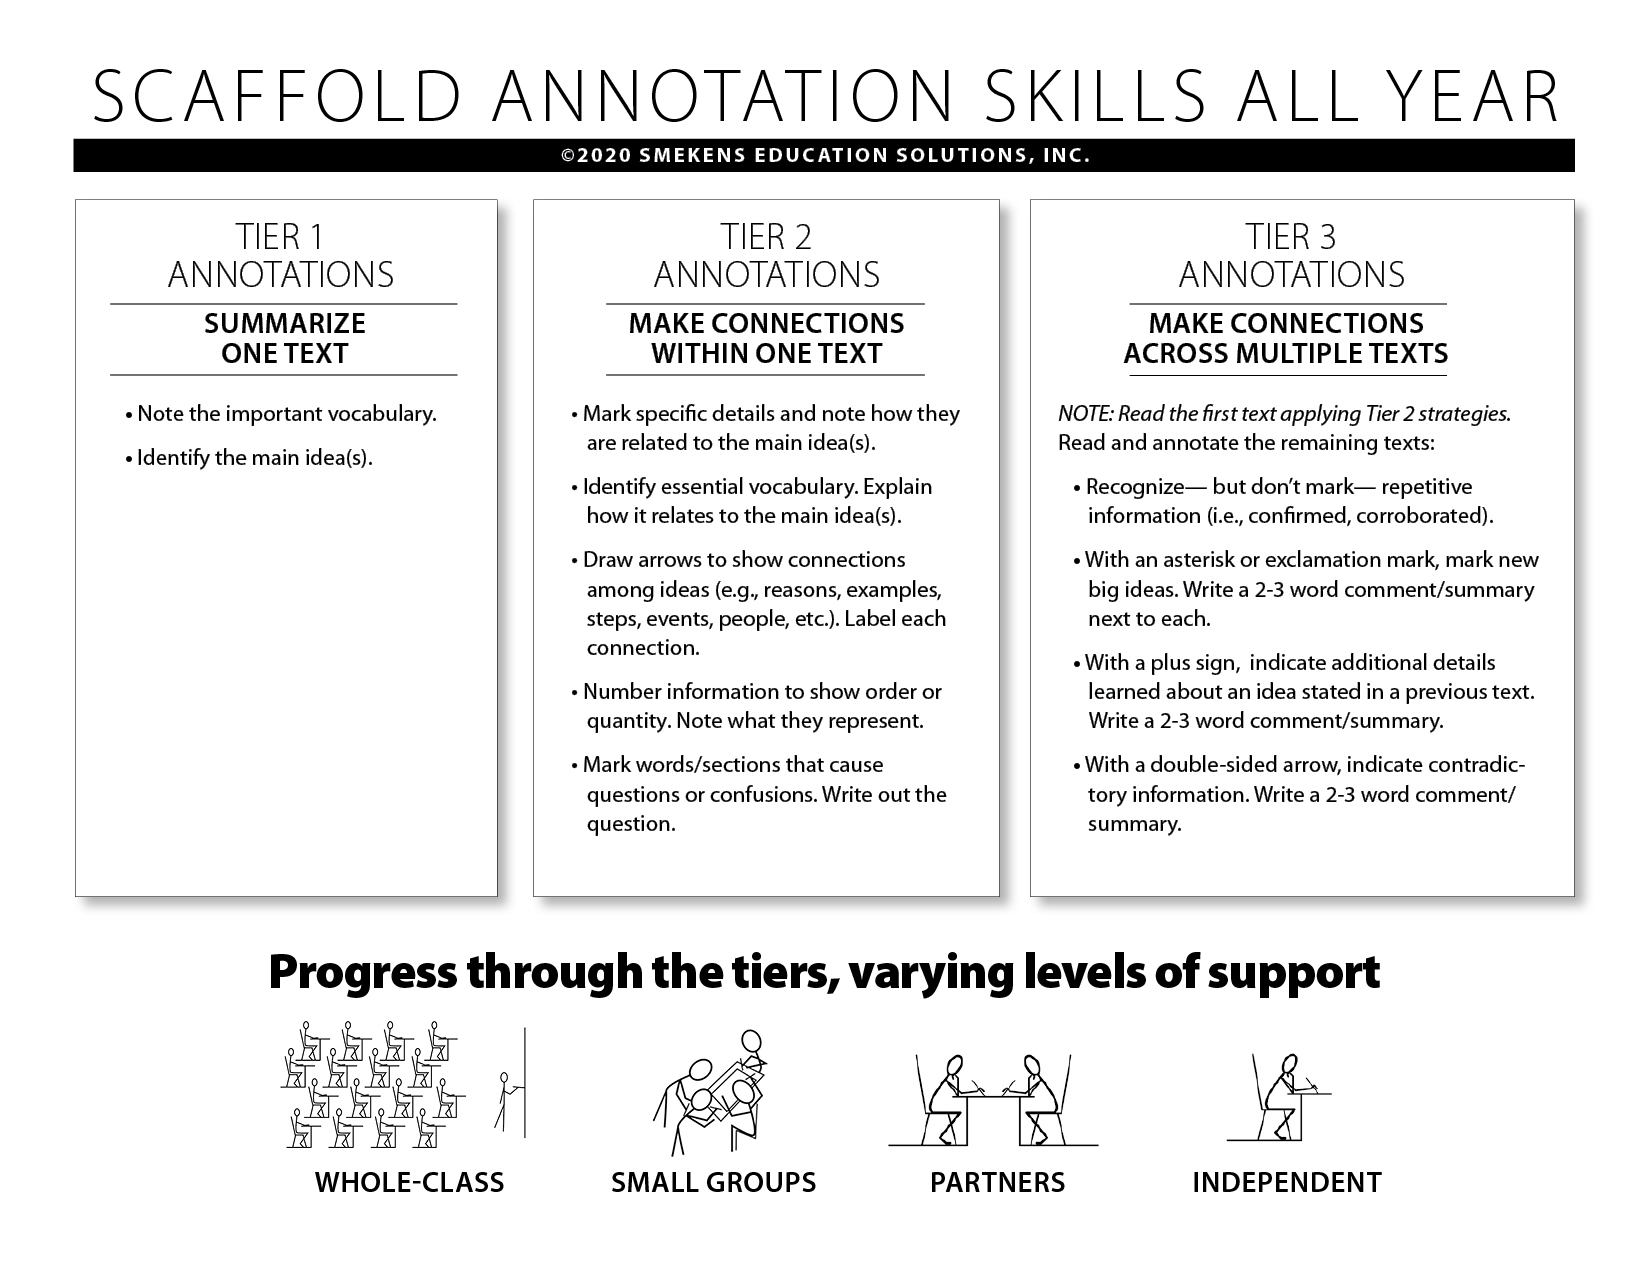 Scaffold Annotation Skills All Year - Downloadable Resource